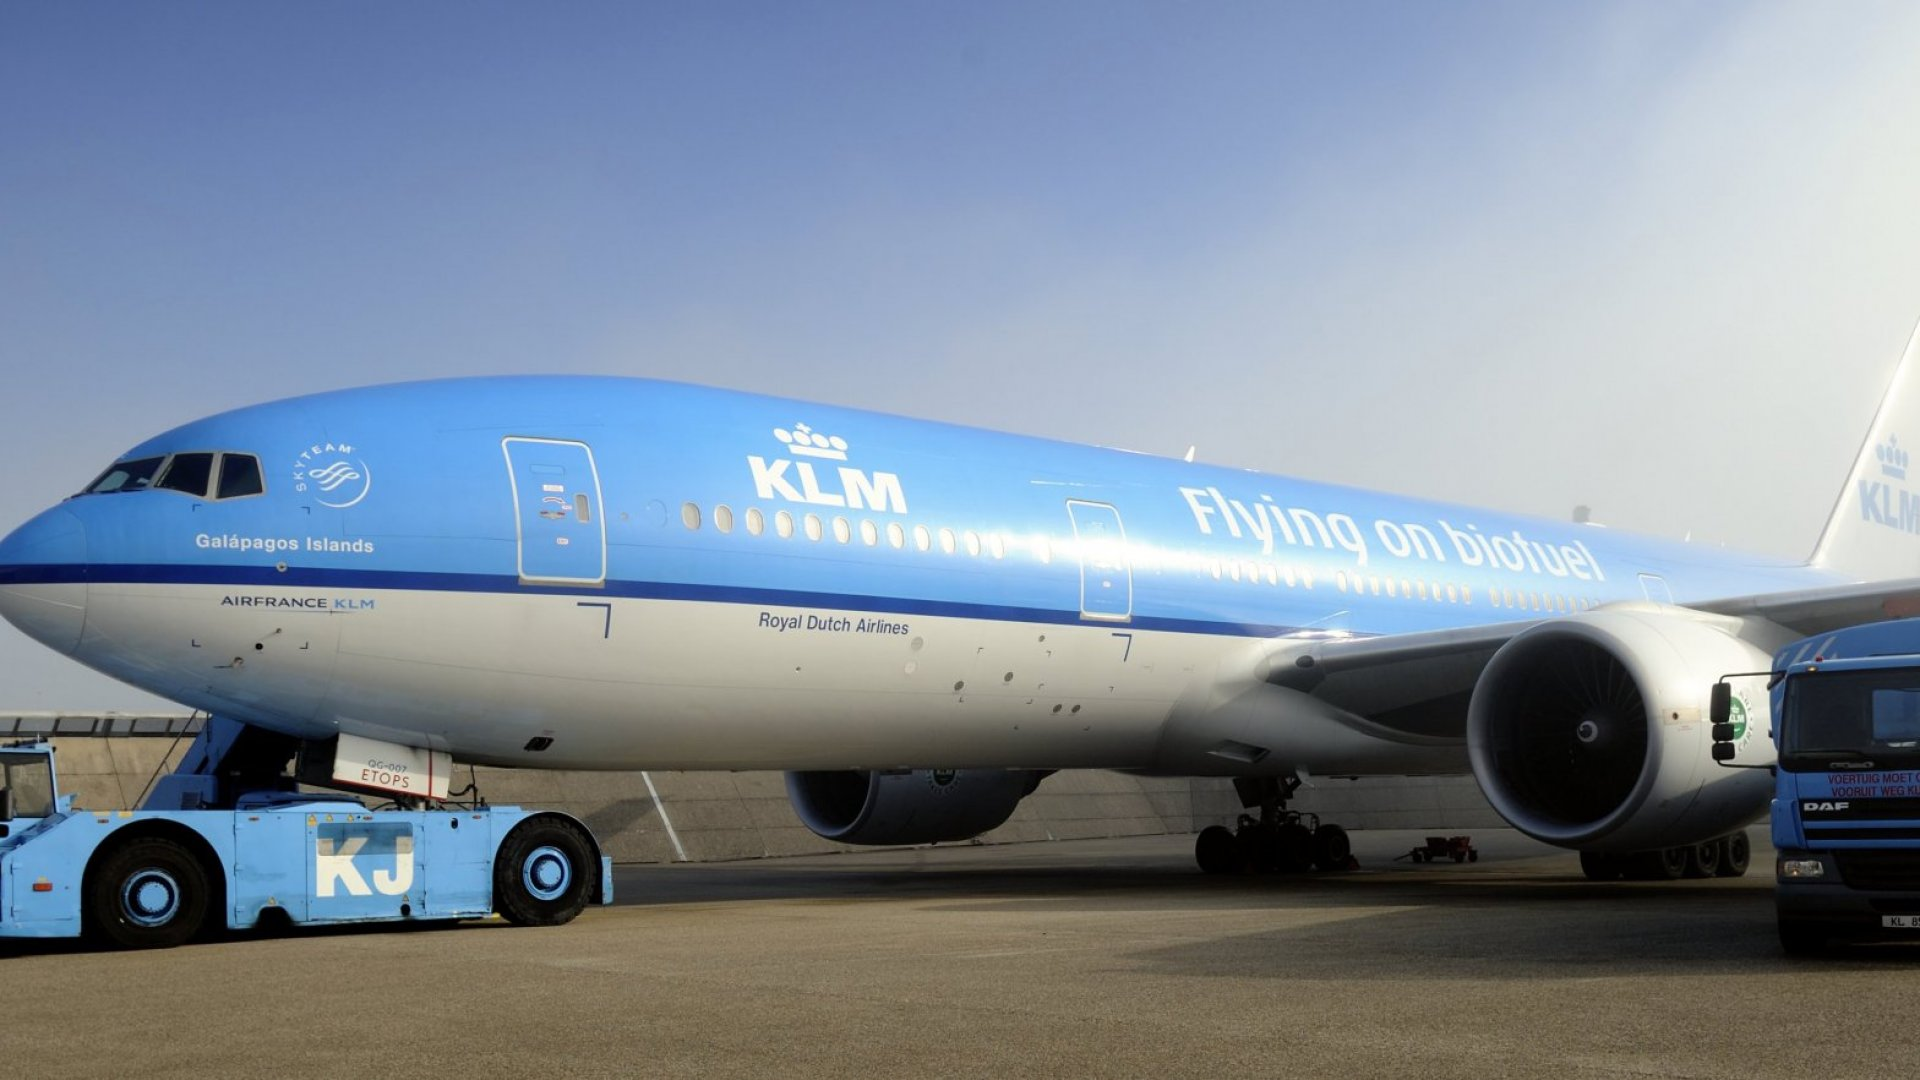 KLM Has a Surprising Request for Passengers: Don't Fly